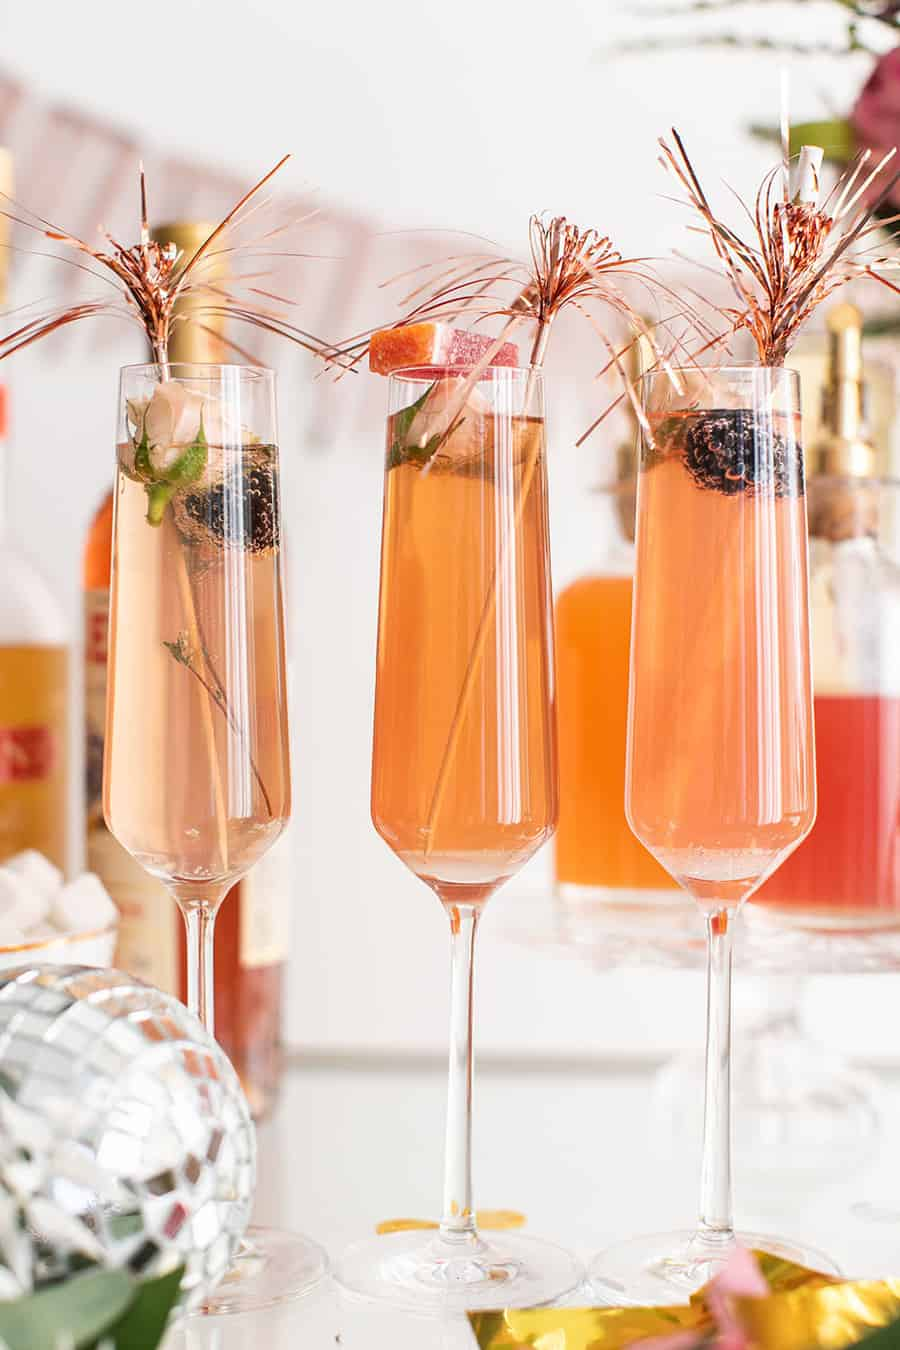 Champagne cocktails for New Year's Eve!